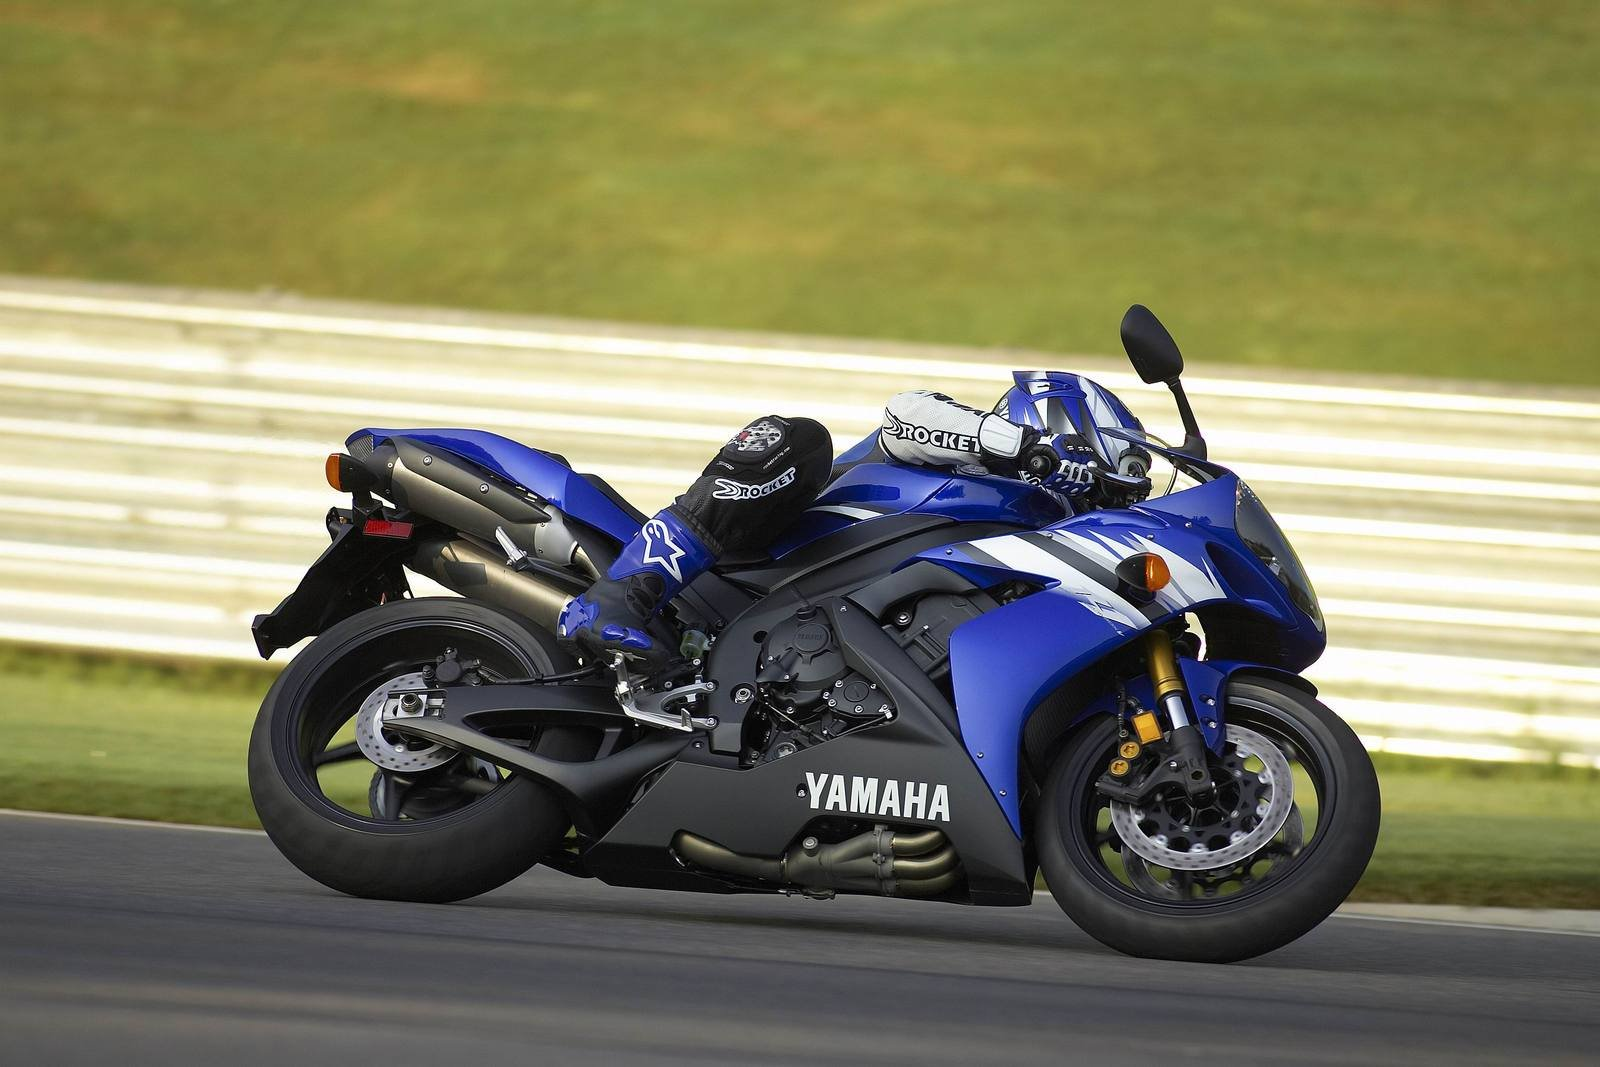 2006 yamaha yzf r1 picture 45346 motorcycle review for 2006 yamaha r1